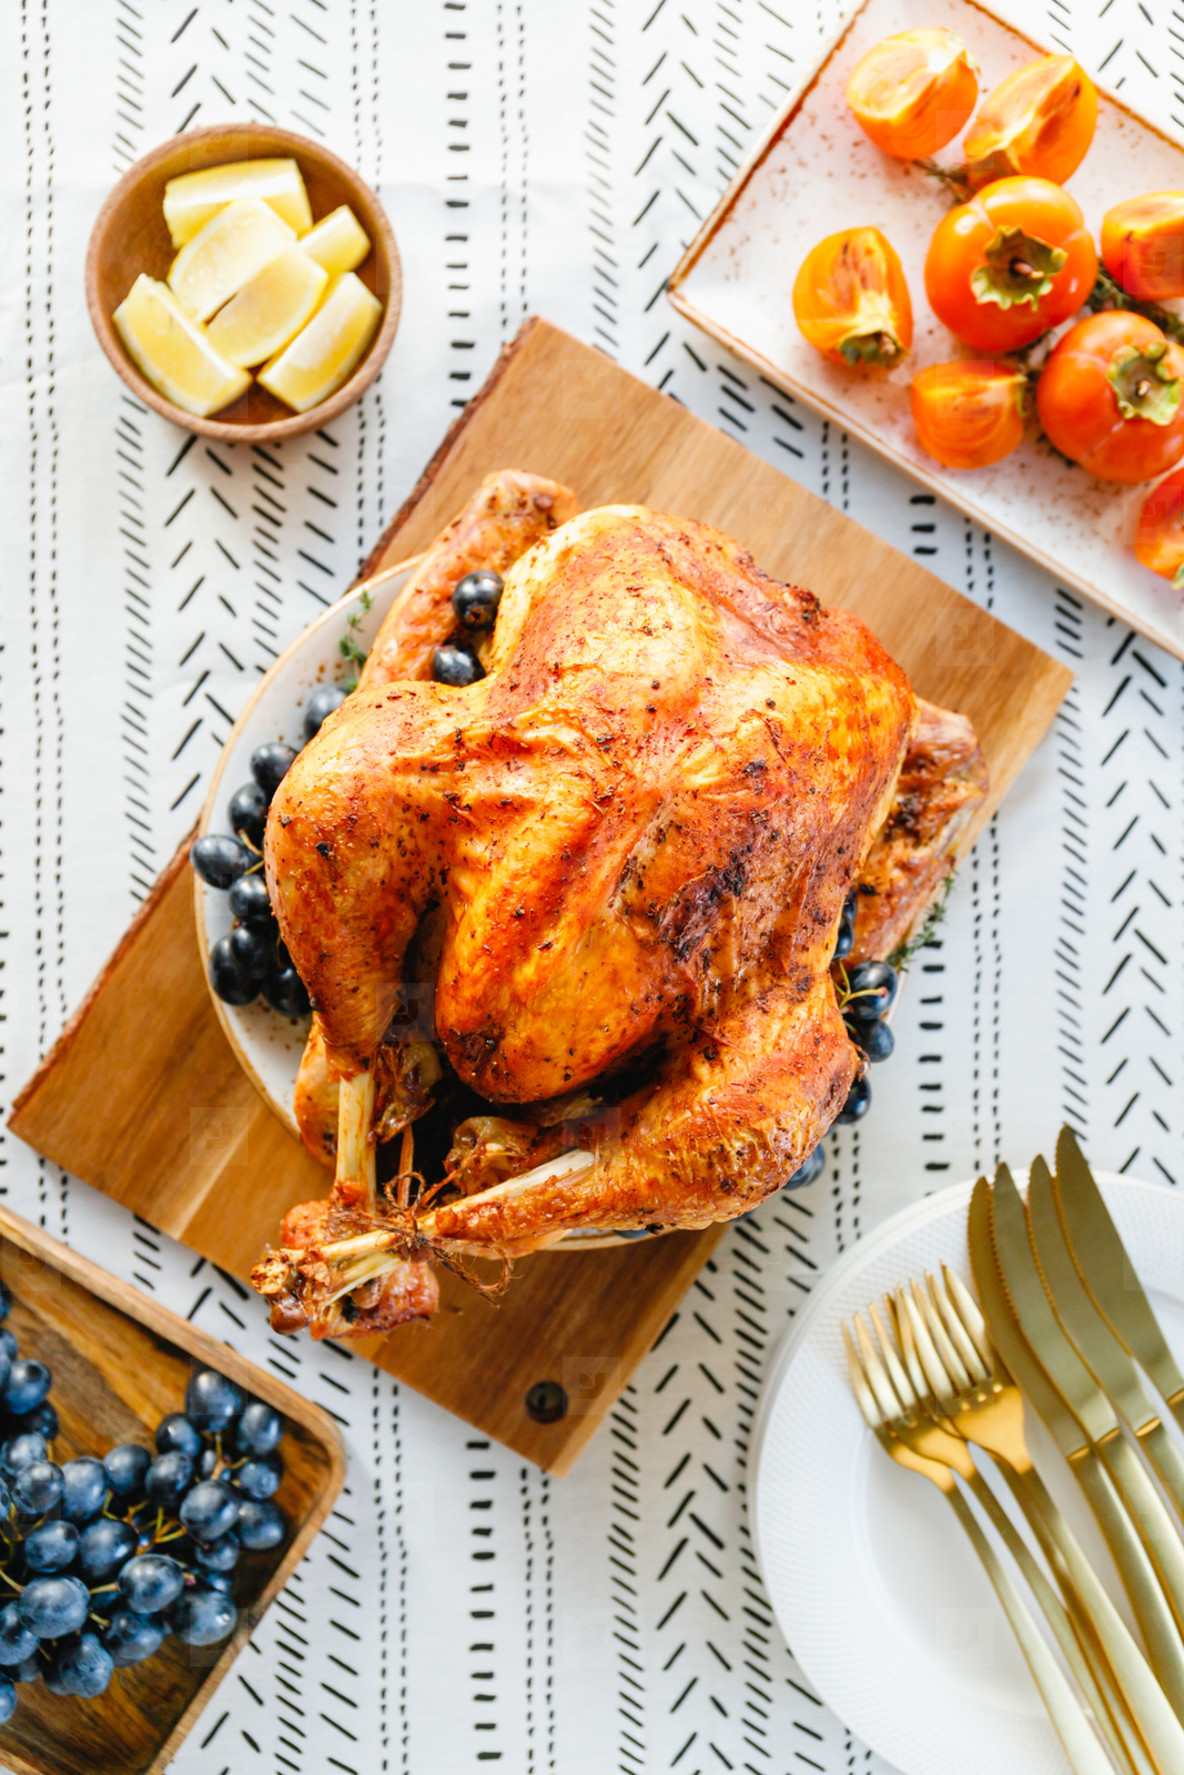 Roasted whole turkey on a festive table with persimmon  blue grape and lemon for family Thanksgiving Holiday  Top view  flat lay